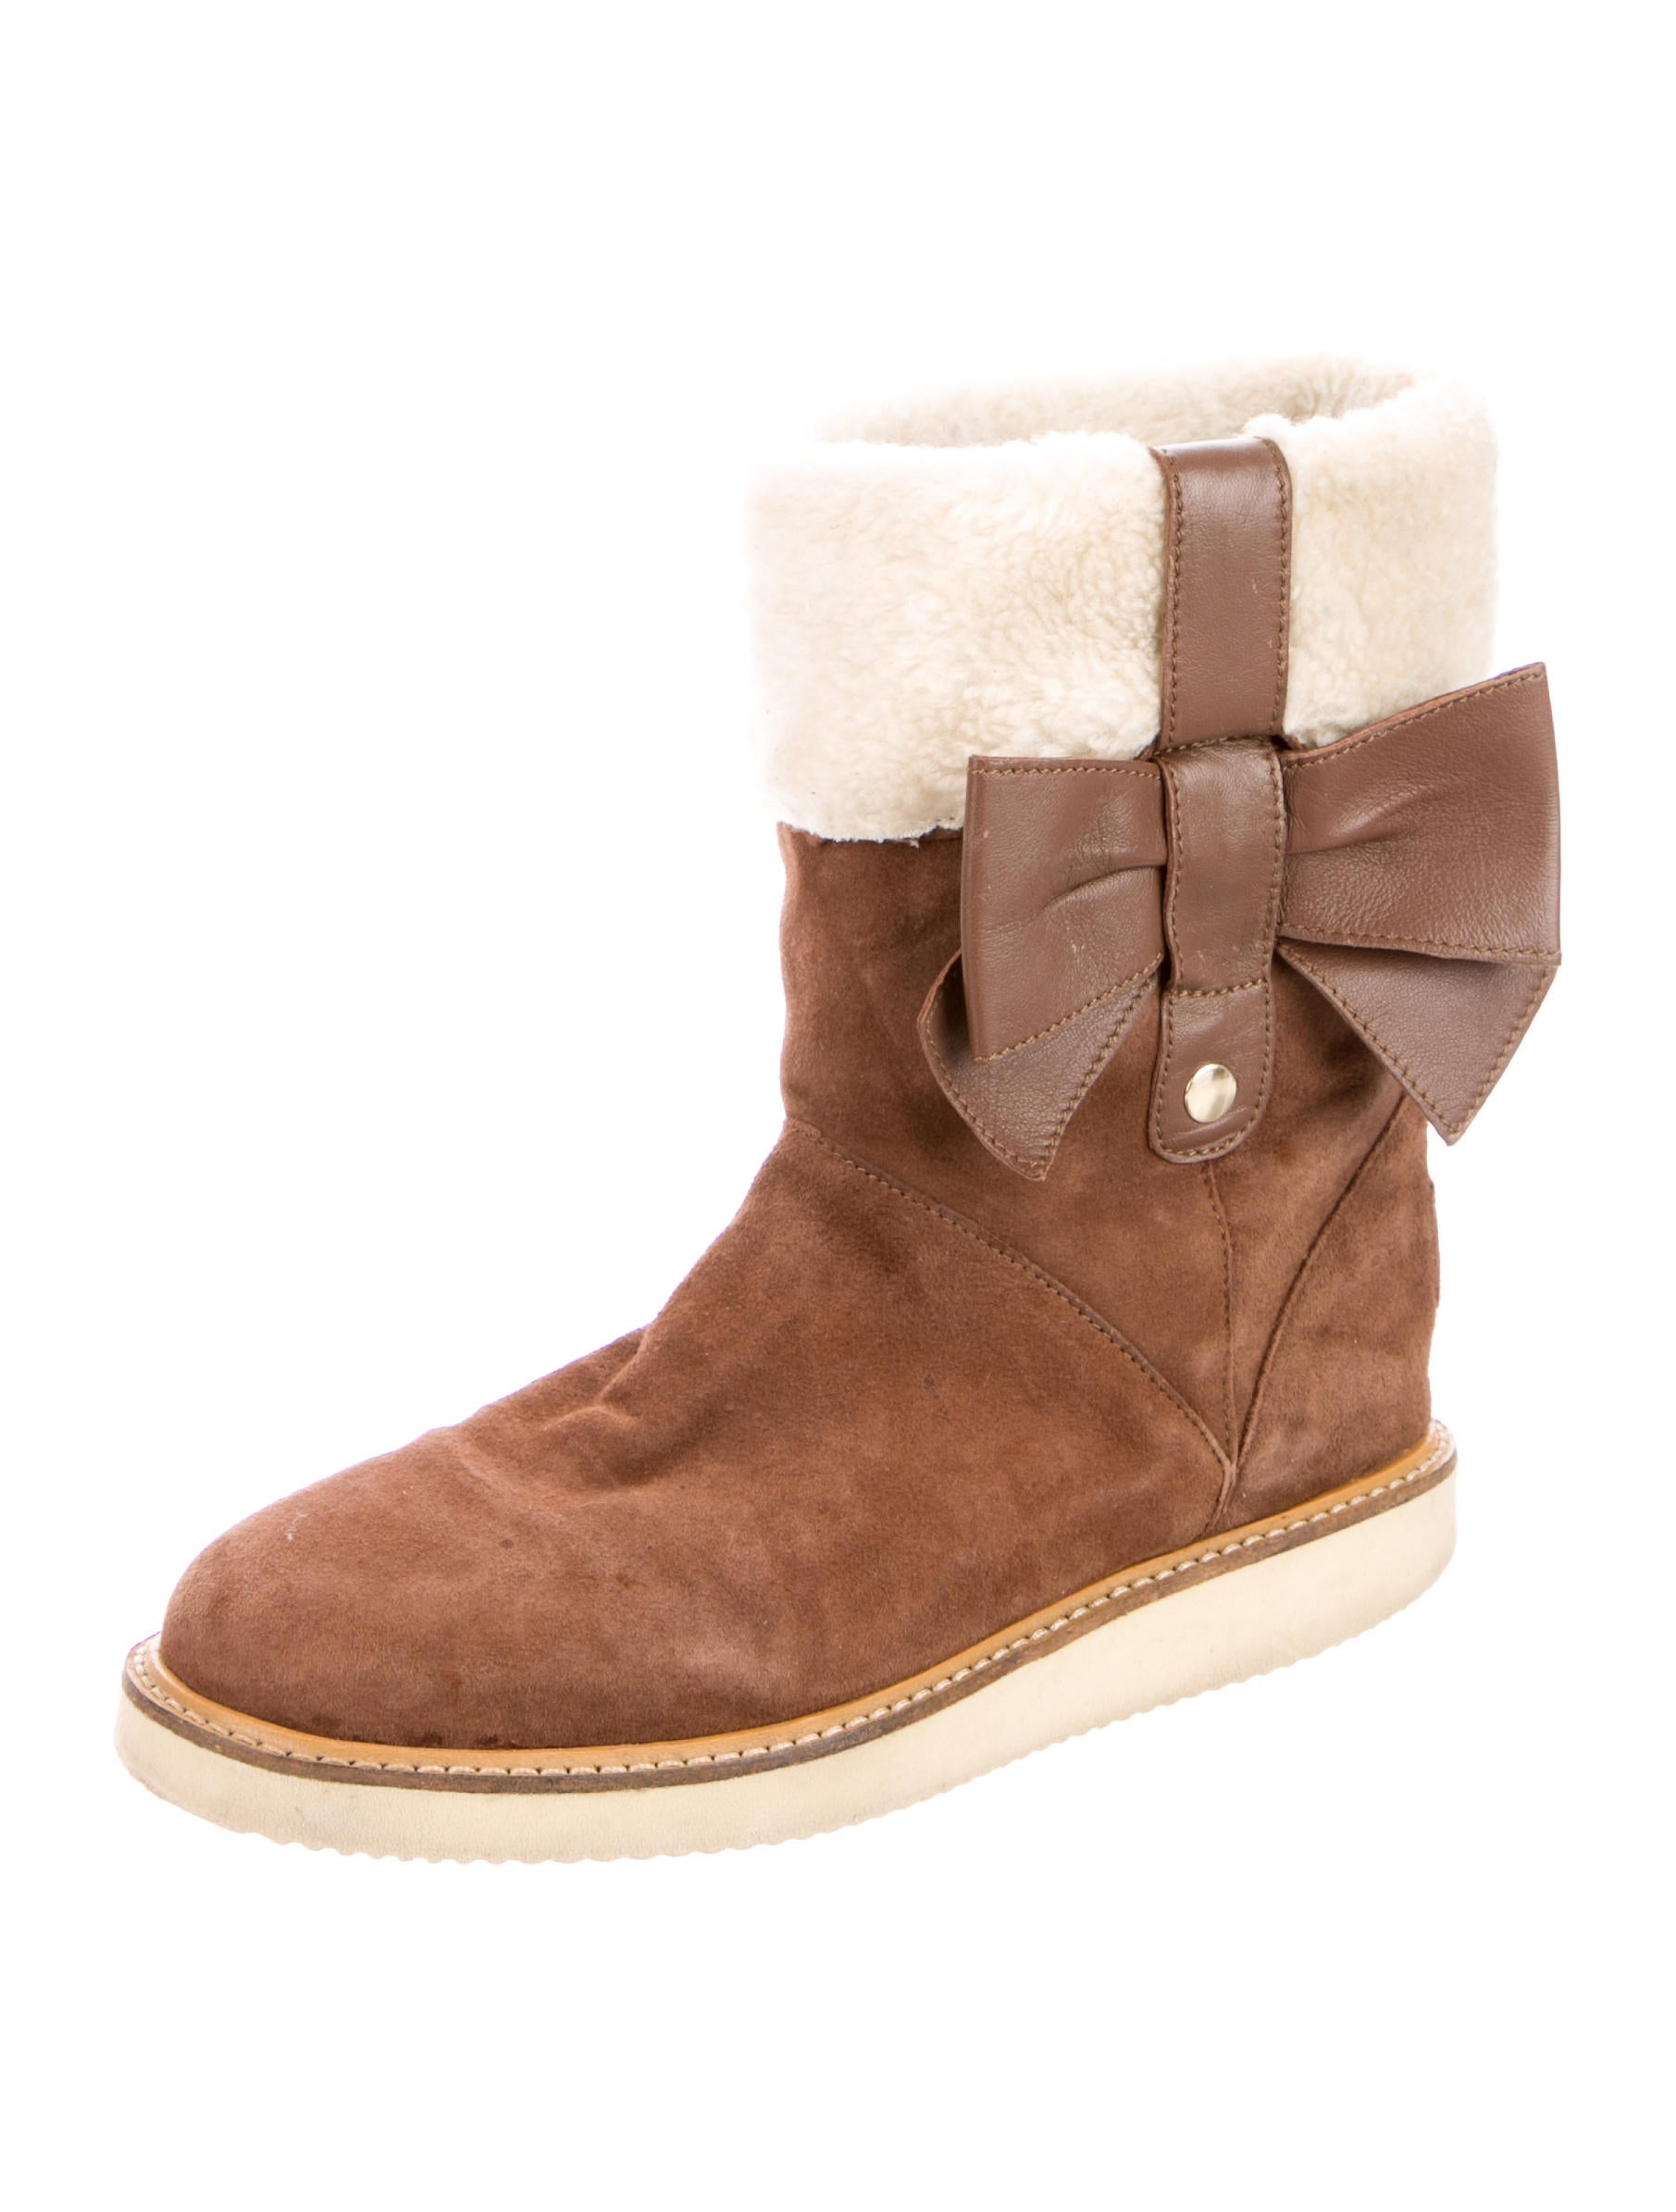 valentino shearling ankle boots shoes wre25761